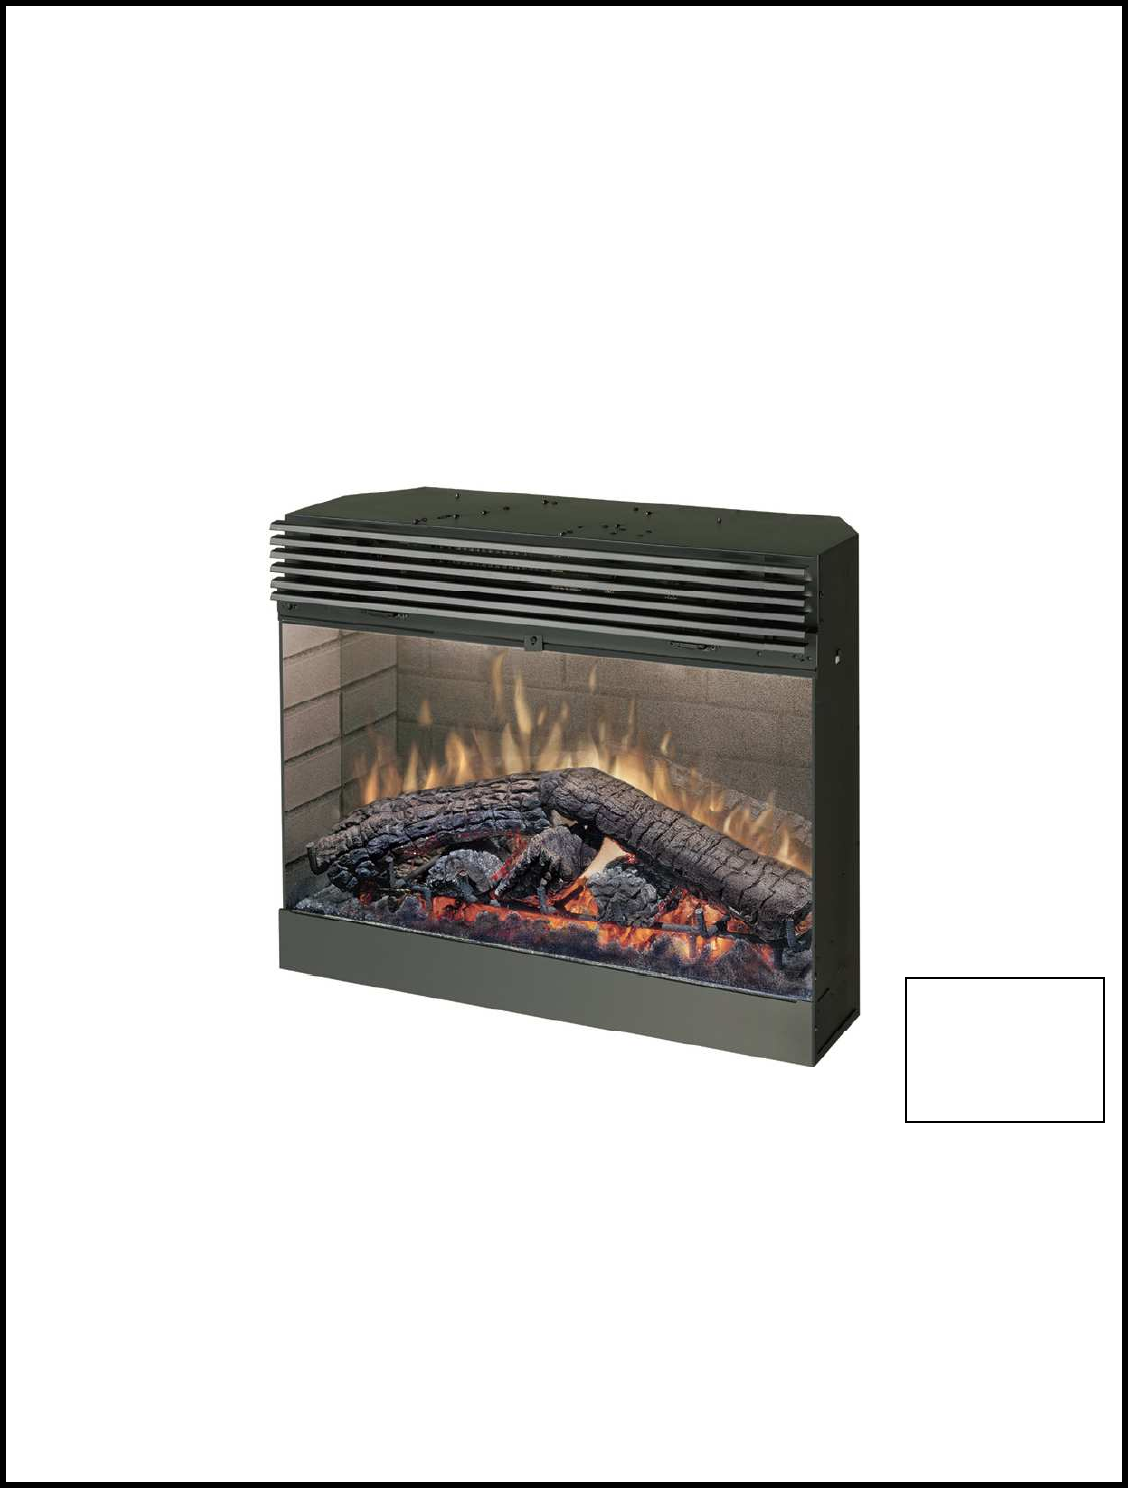 Dimplex Fireplace Manual Part - 30: PRACTICAL USERu0027S GUIDE. FOR THE ELECTRIC FIREPLACE